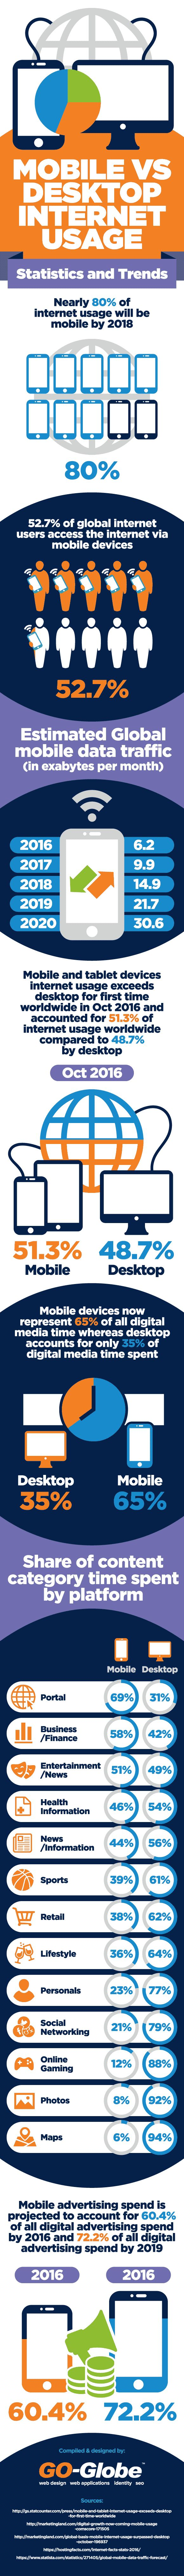 Mobile VS Desktop Internet Usage #Infographic #Computer #Internet